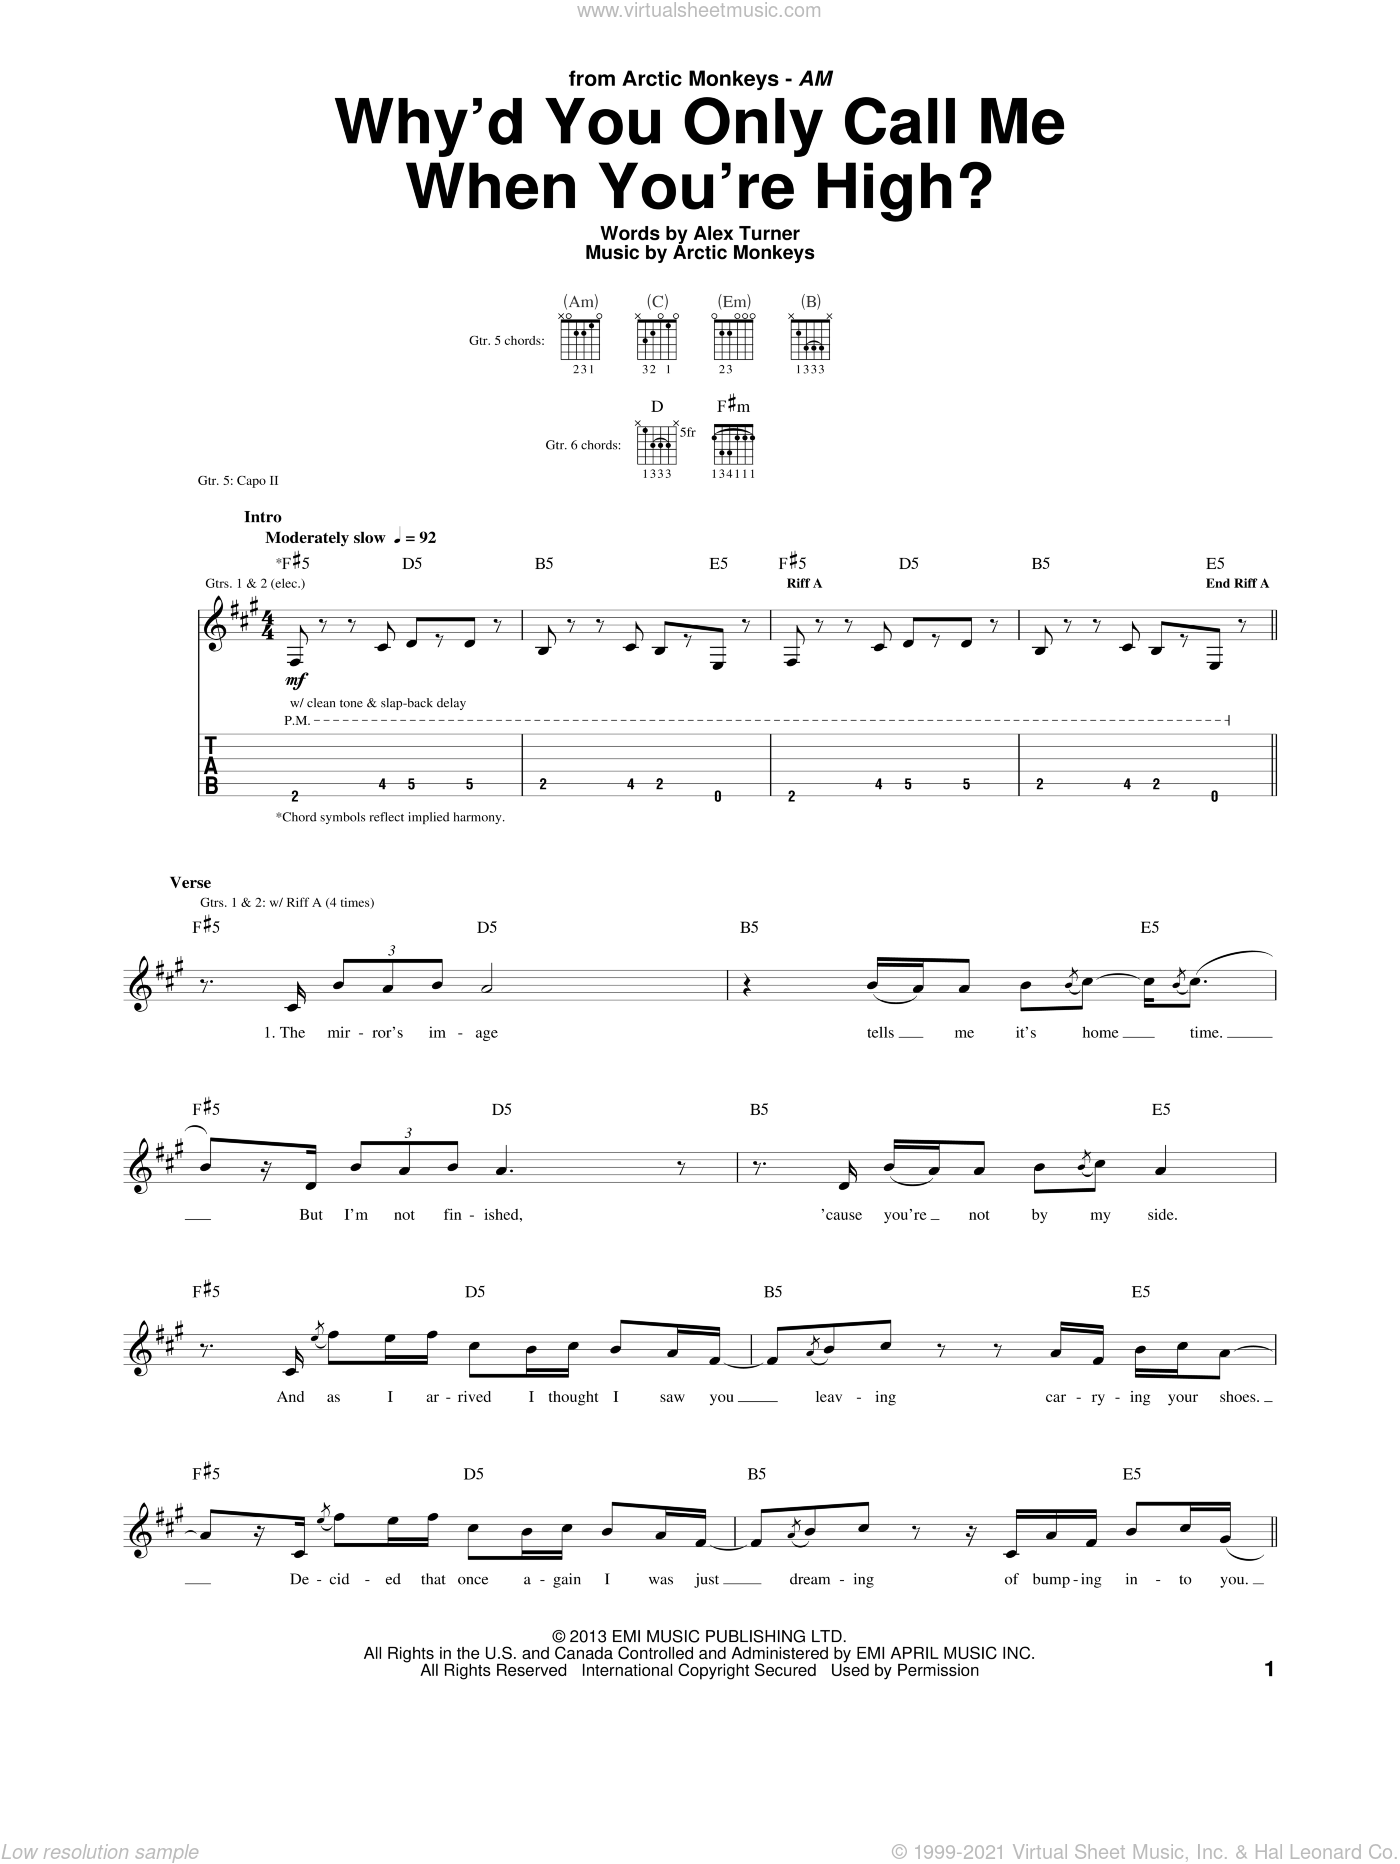 Why'd You Only Call Me When You're High? sheet music for guitar (tablature) by Arctic Monkeys, intermediate